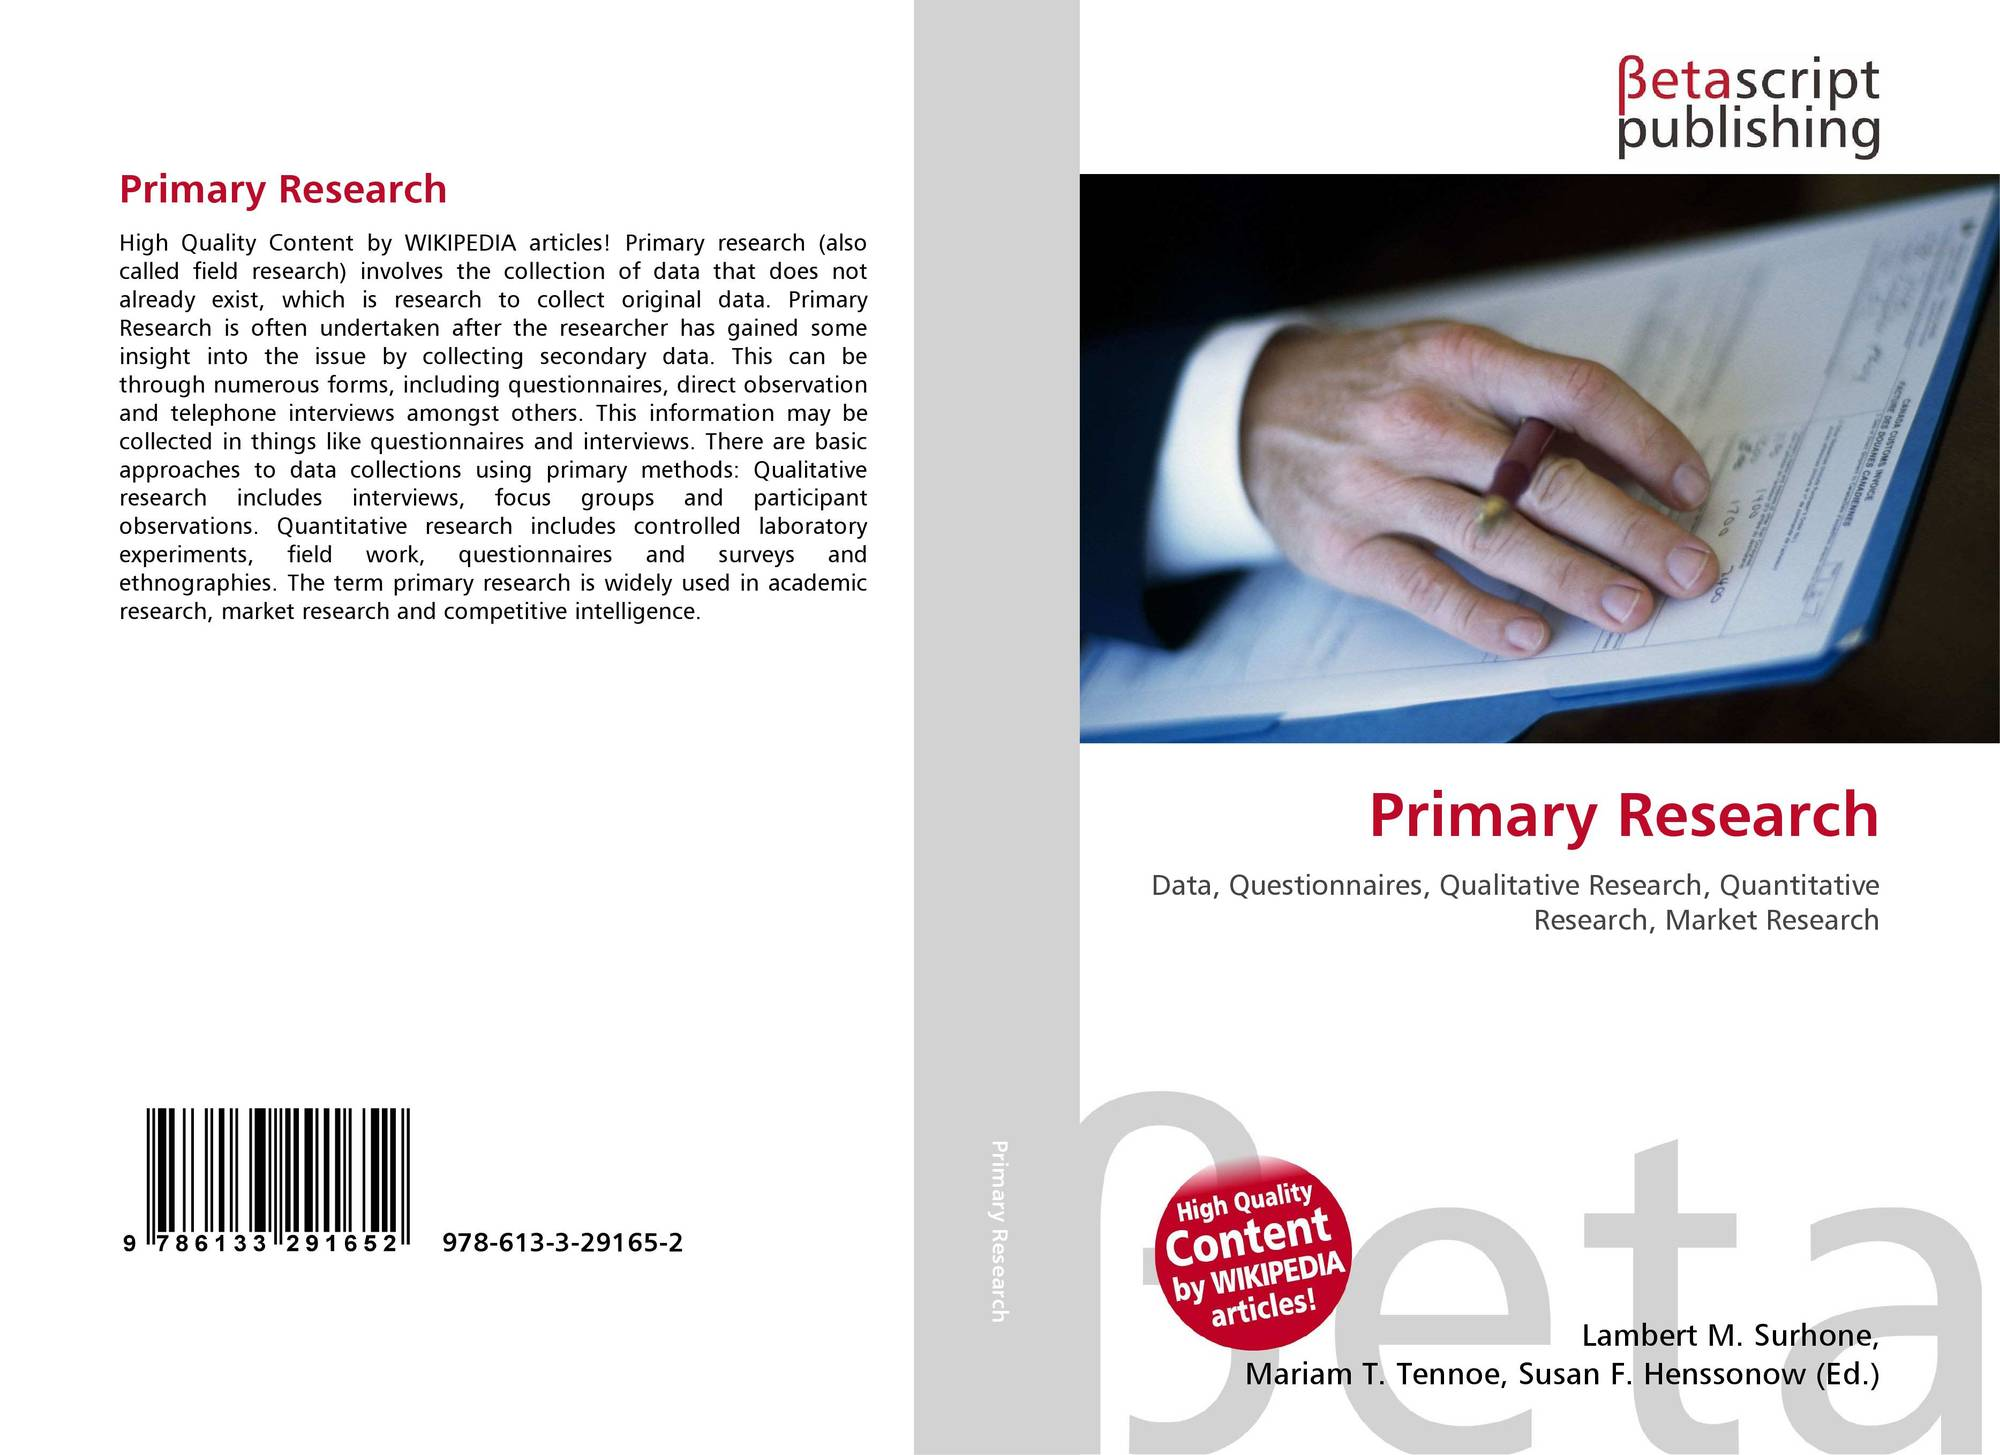 primary research The market research that involves the collection of data that does not yet exist.